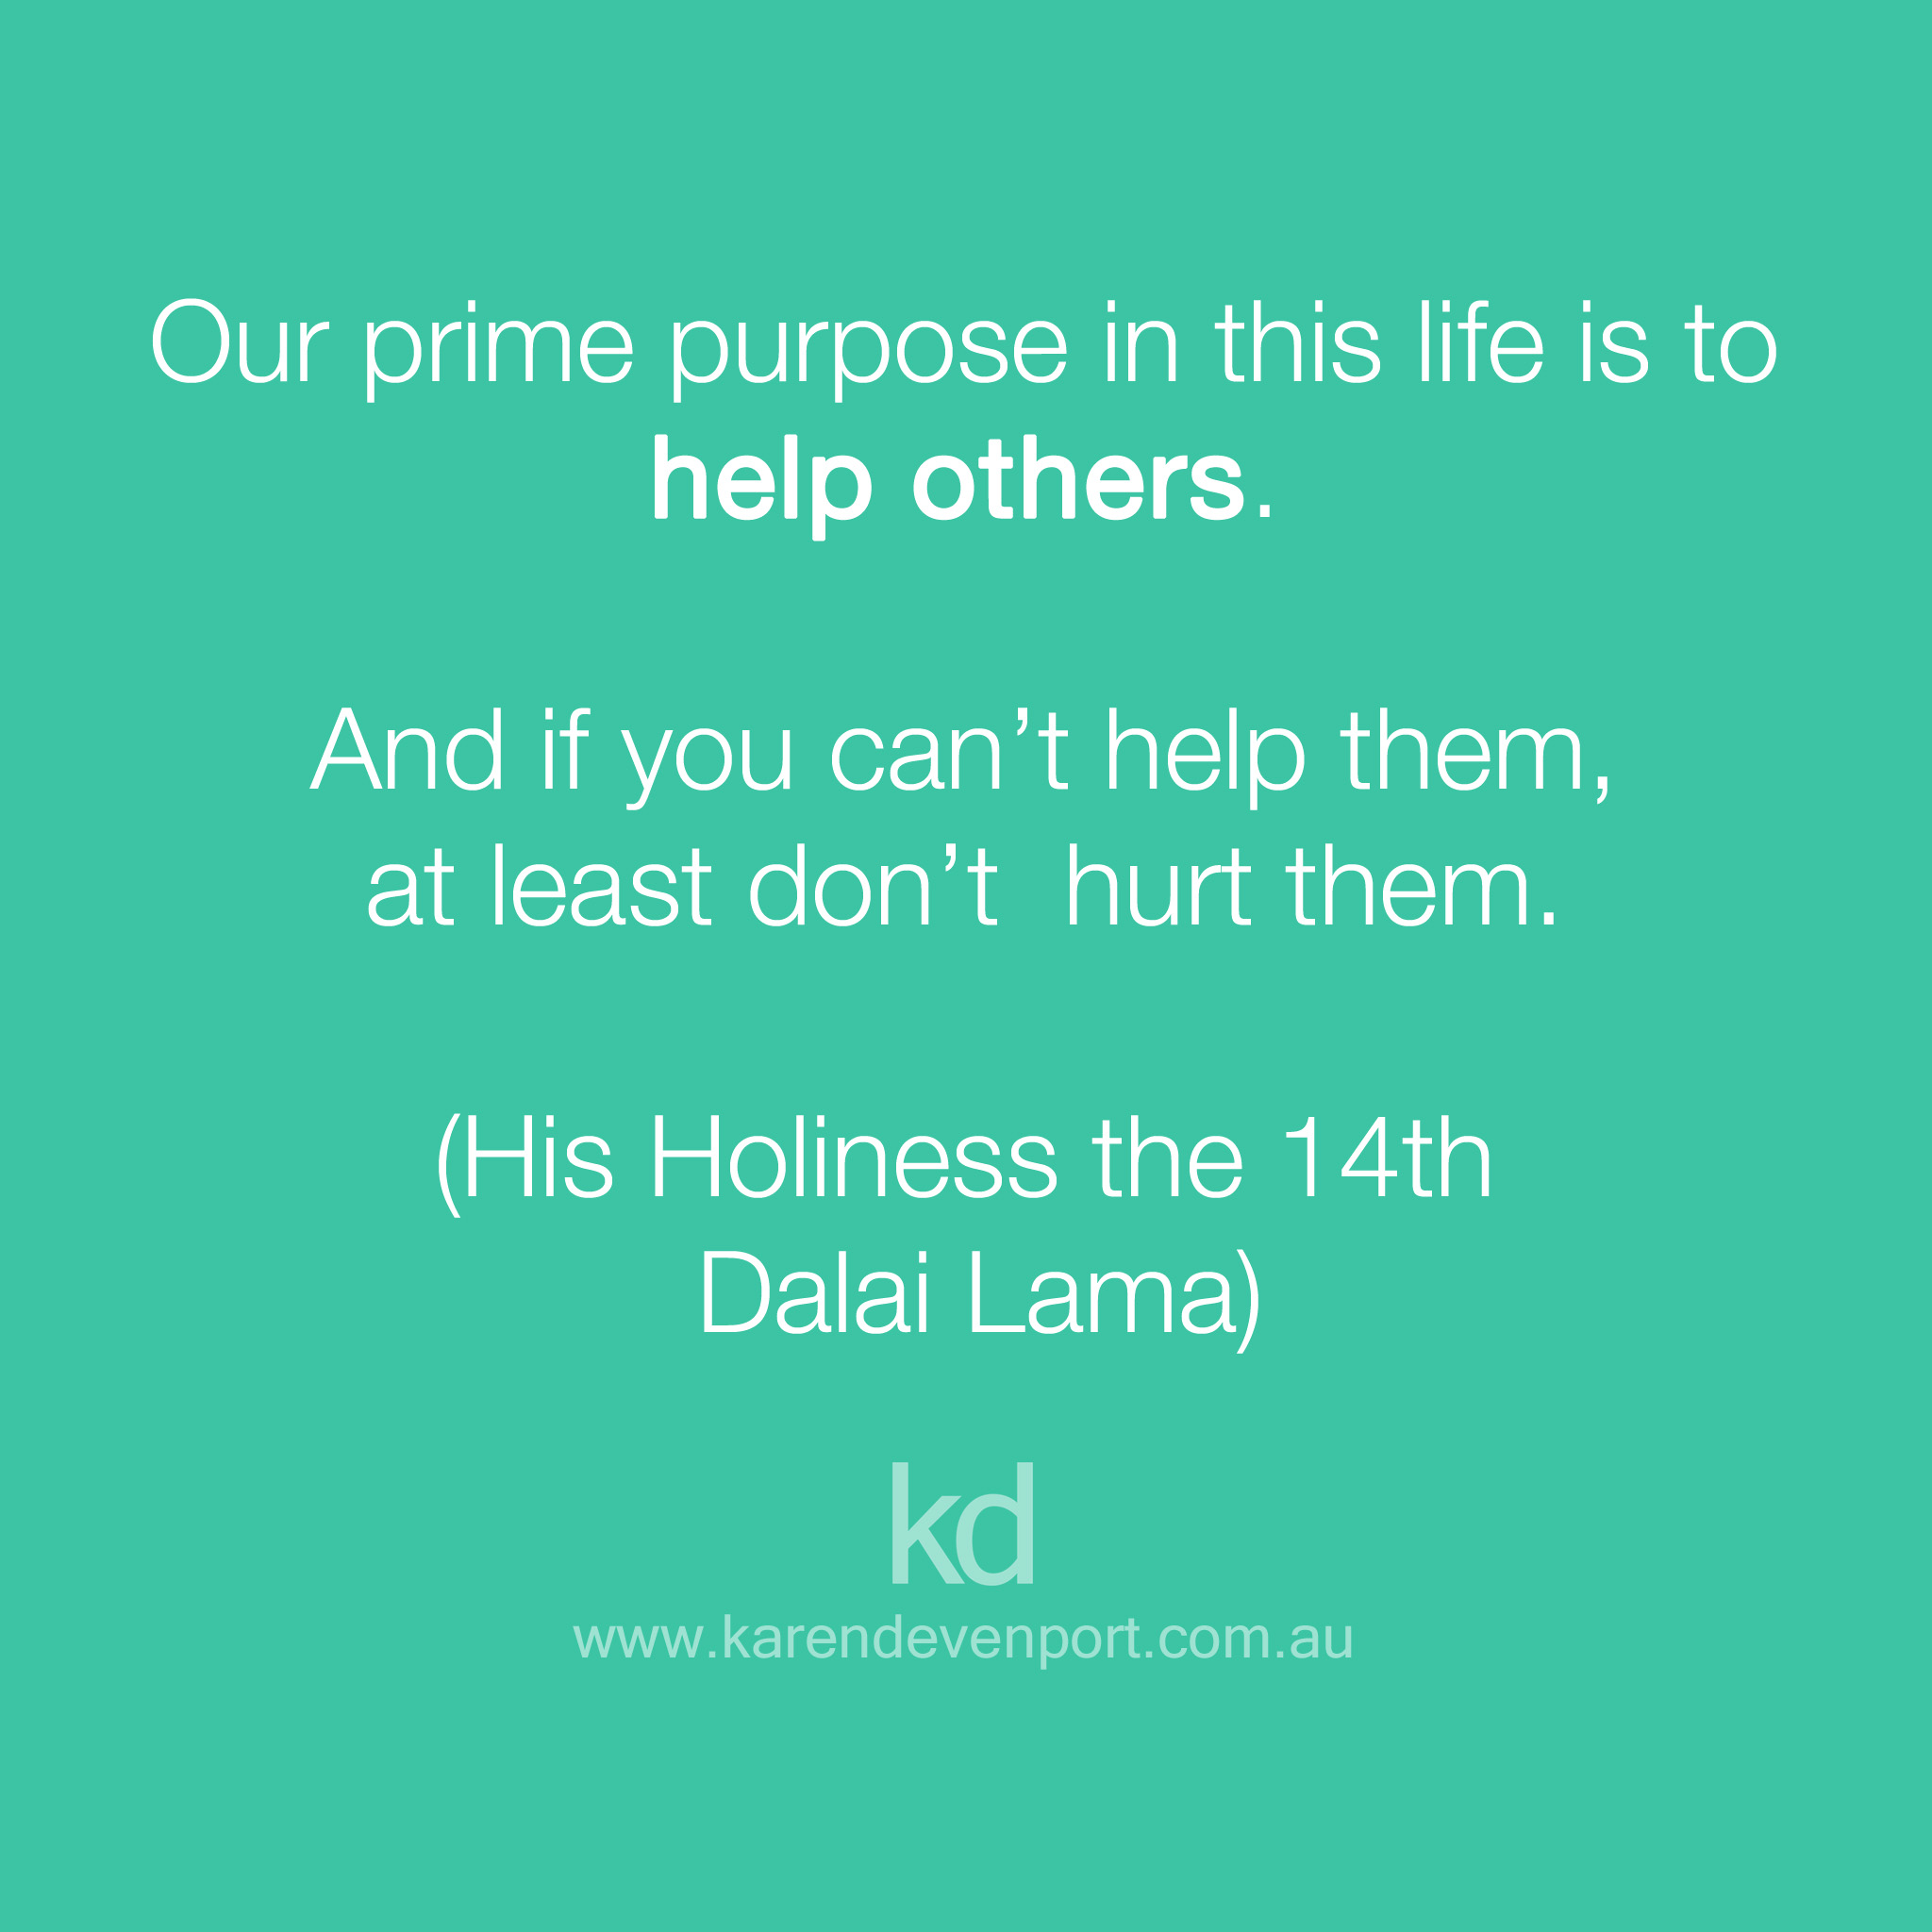 Our prime purpose in life is to help others